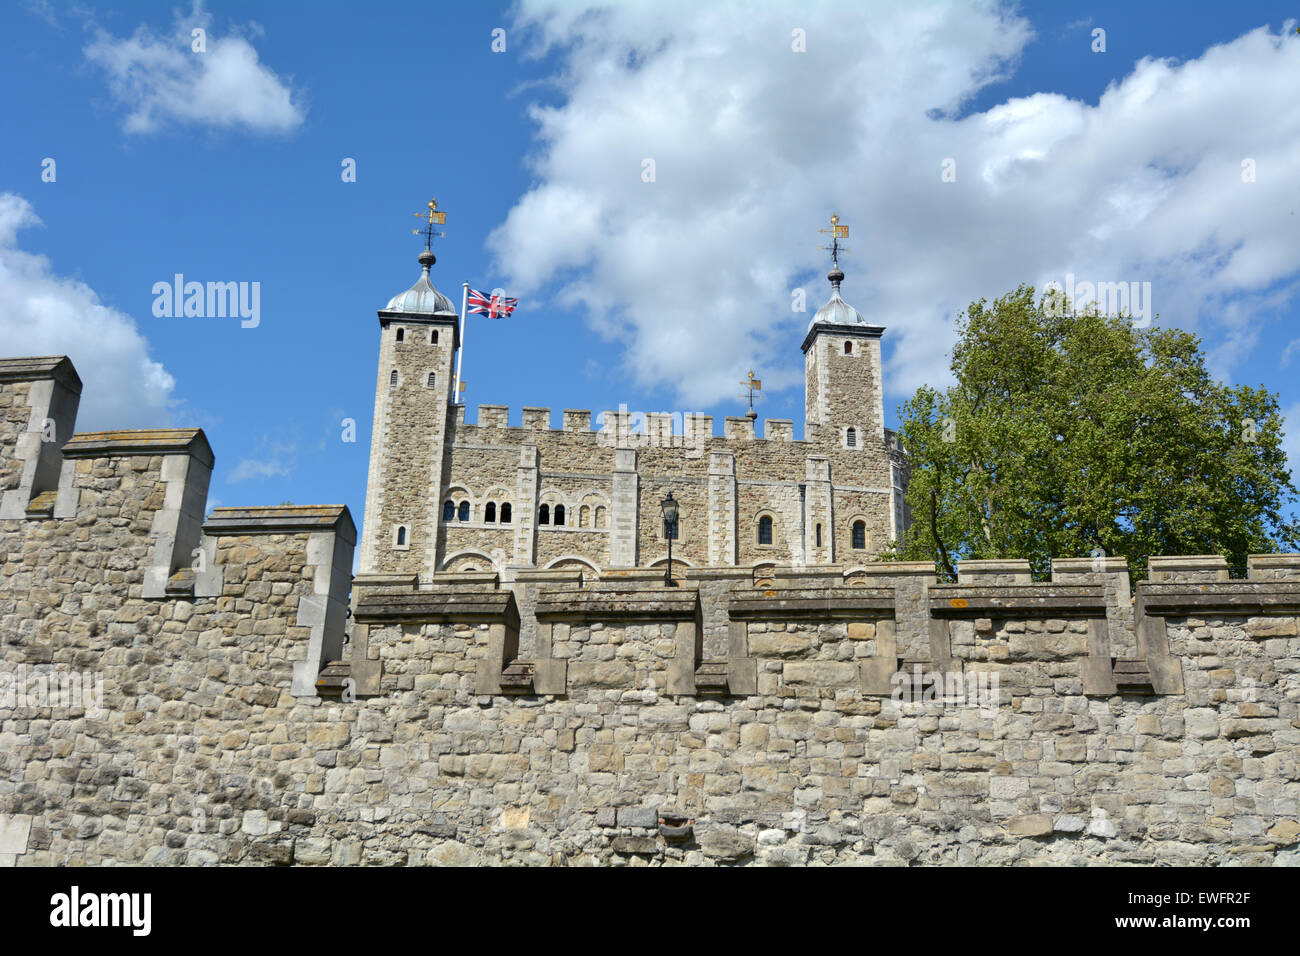 The outer curtain wall and the White Tower of The Tower of London in City of London, UK. - Stock Image